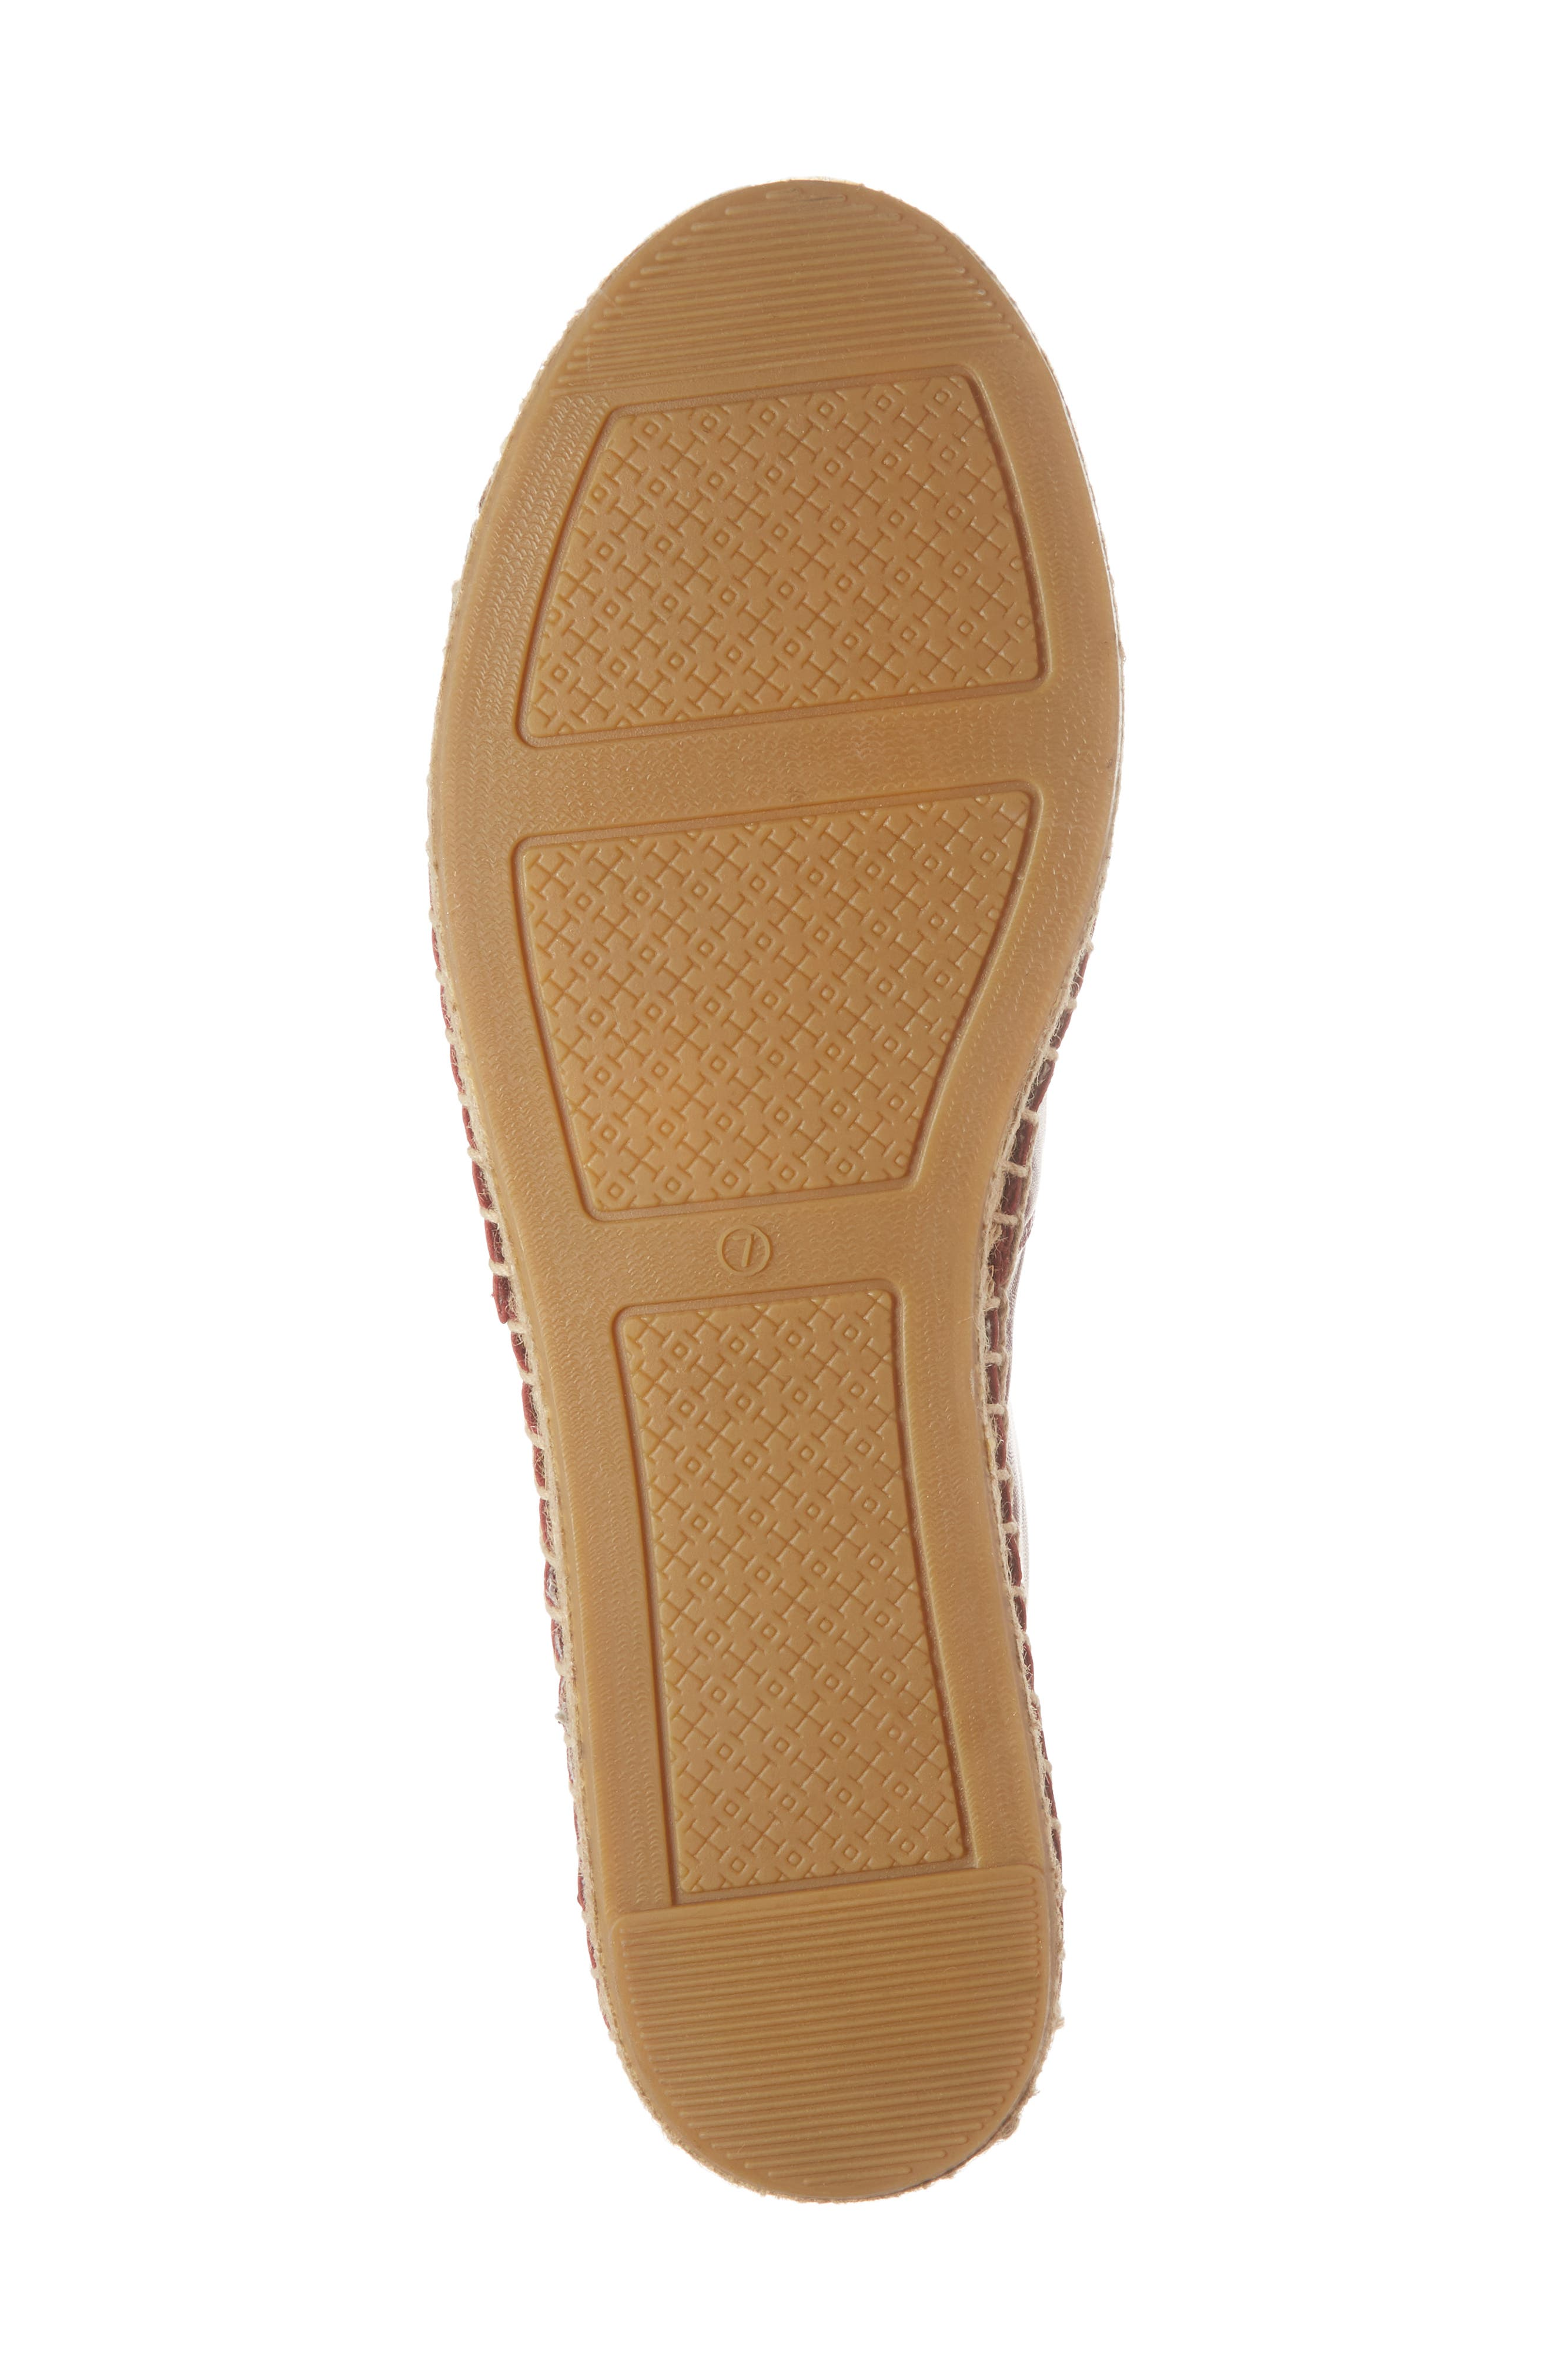 Colorblock Espadrille Flat,                             Alternate thumbnail 6, color,                             Tuscan Wine/ Tory Navy